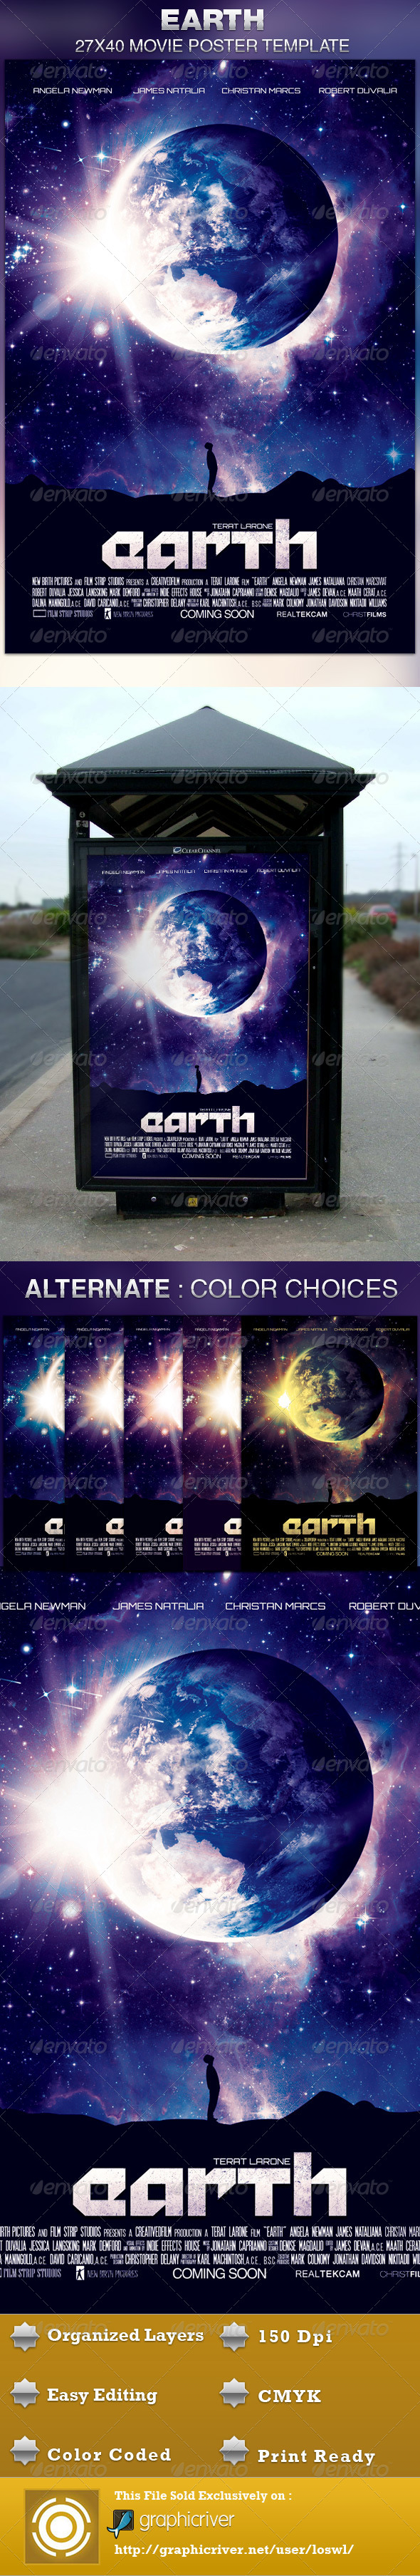 GraphicRiver Earth Movie Poster Template 4573630